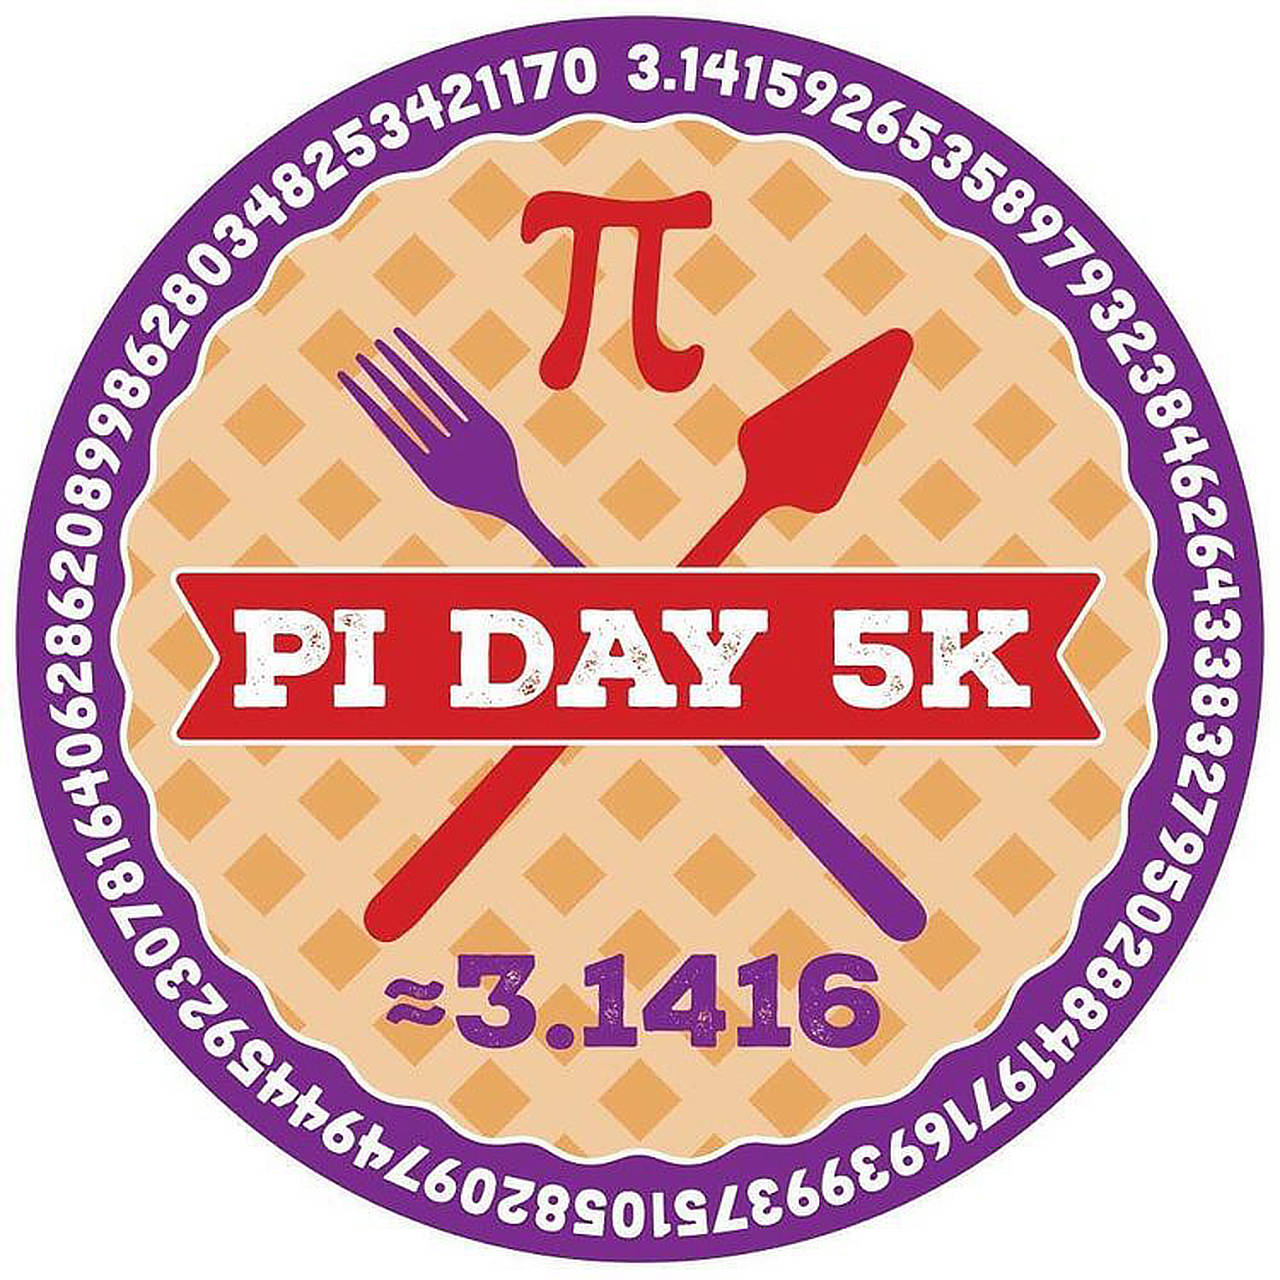 Pi Day 5K fun run